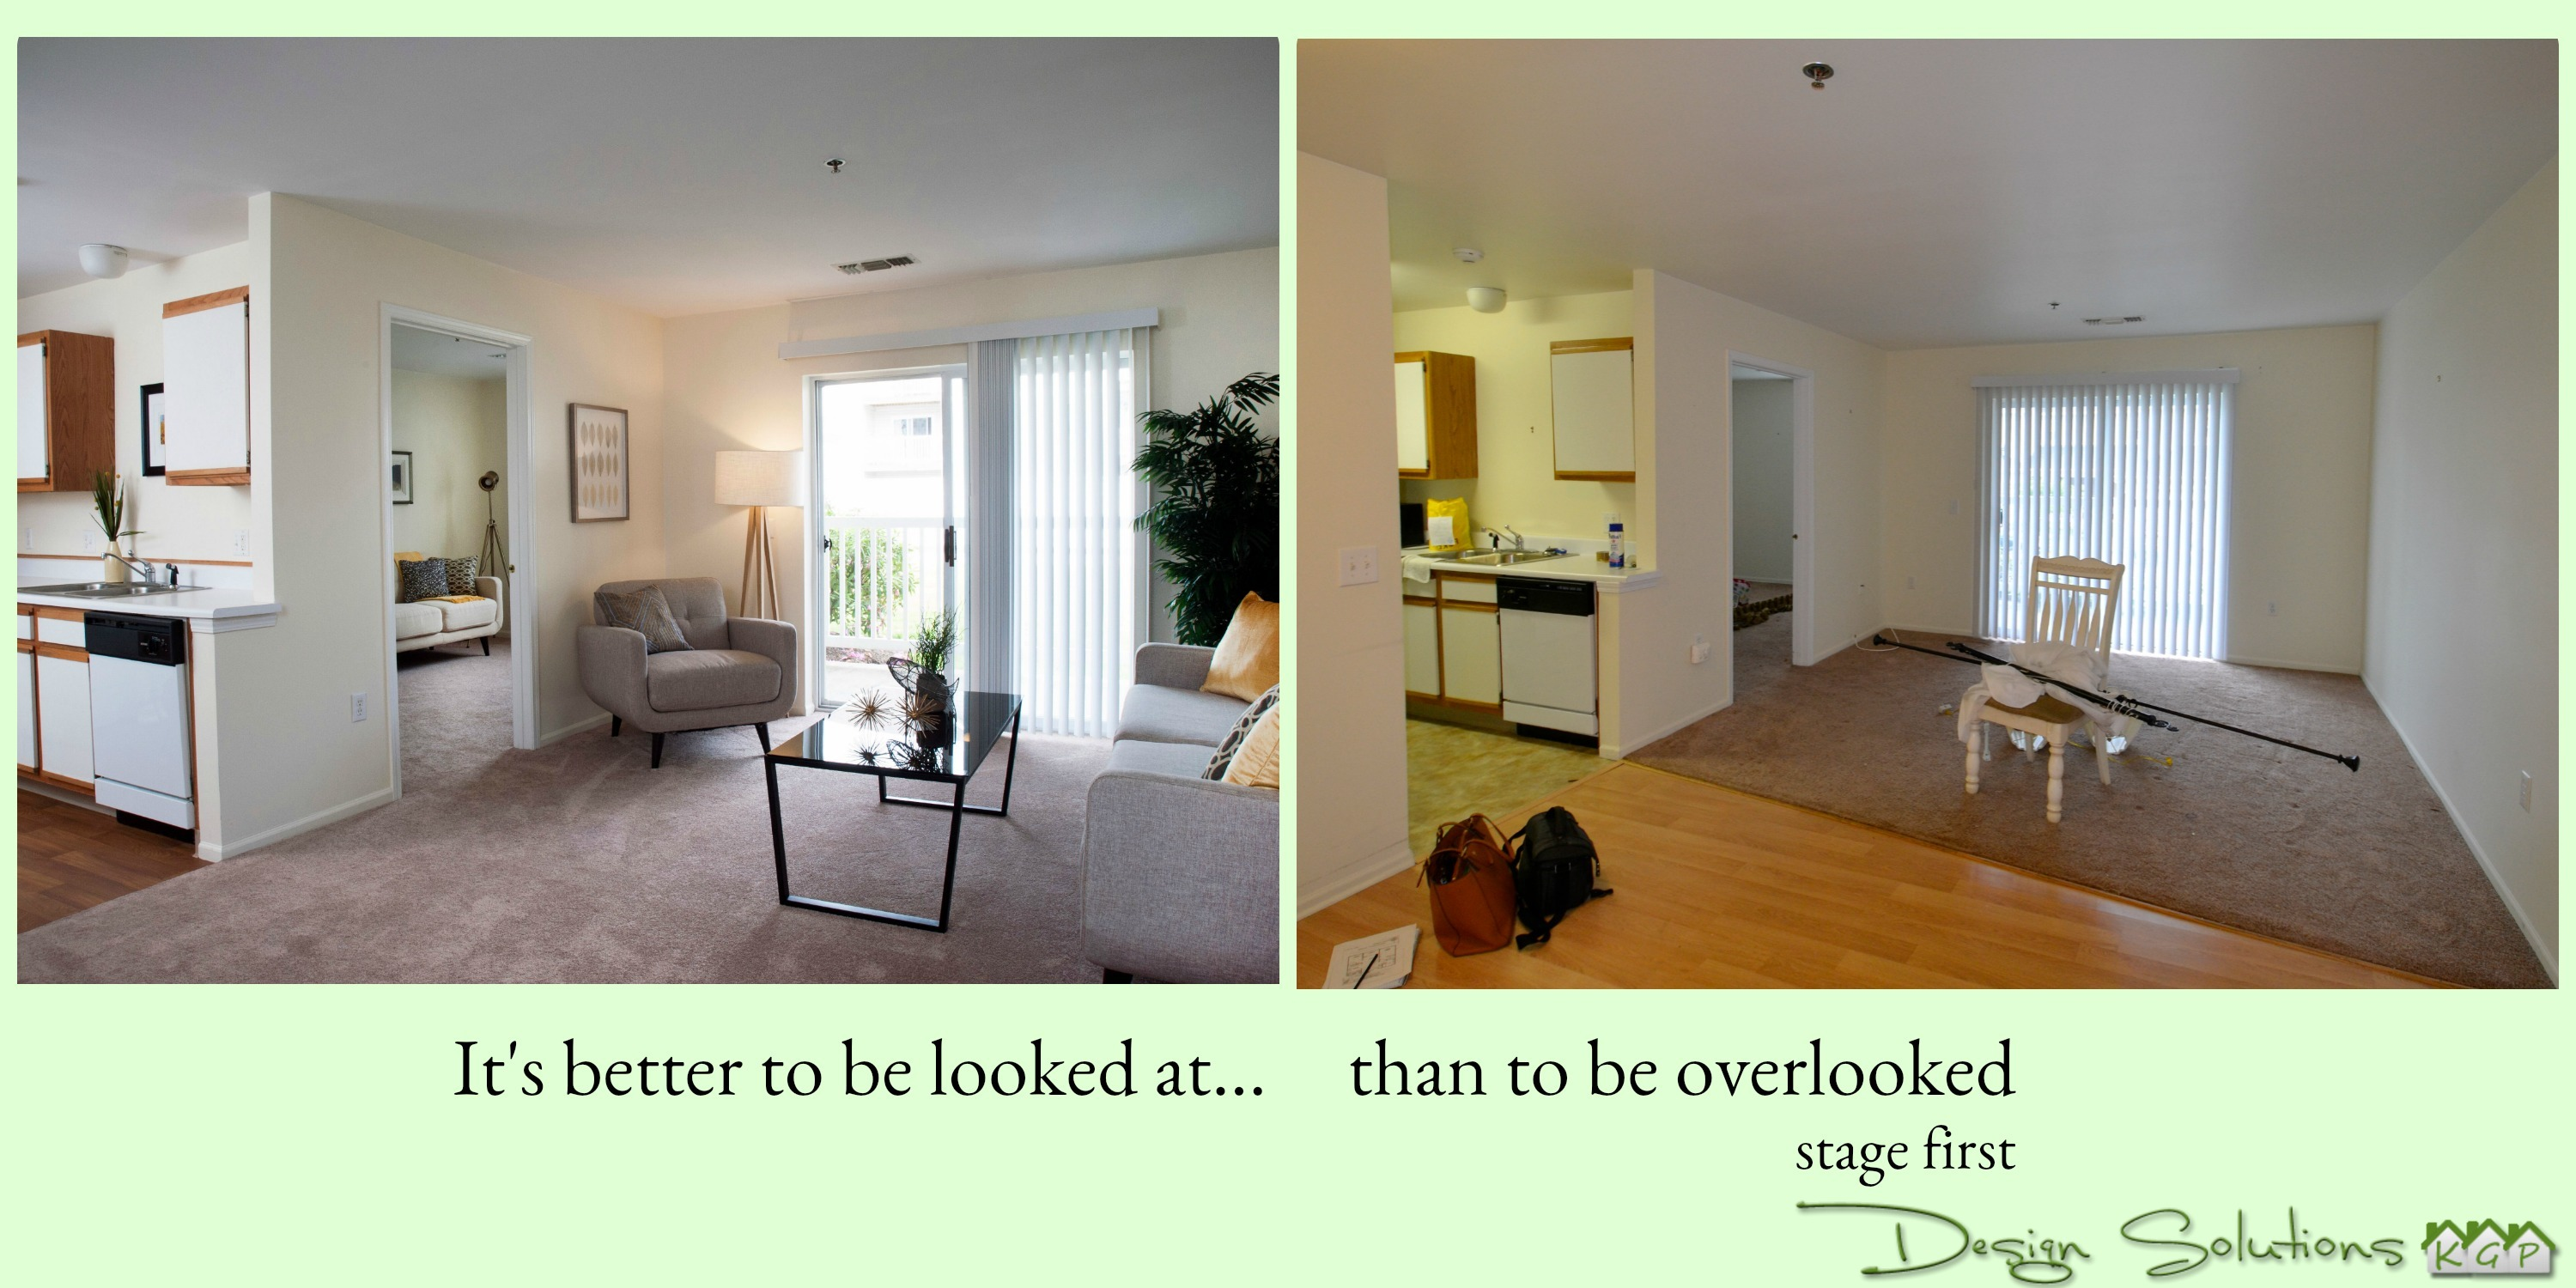 staged room and vacant room better to be looked at than overlooked